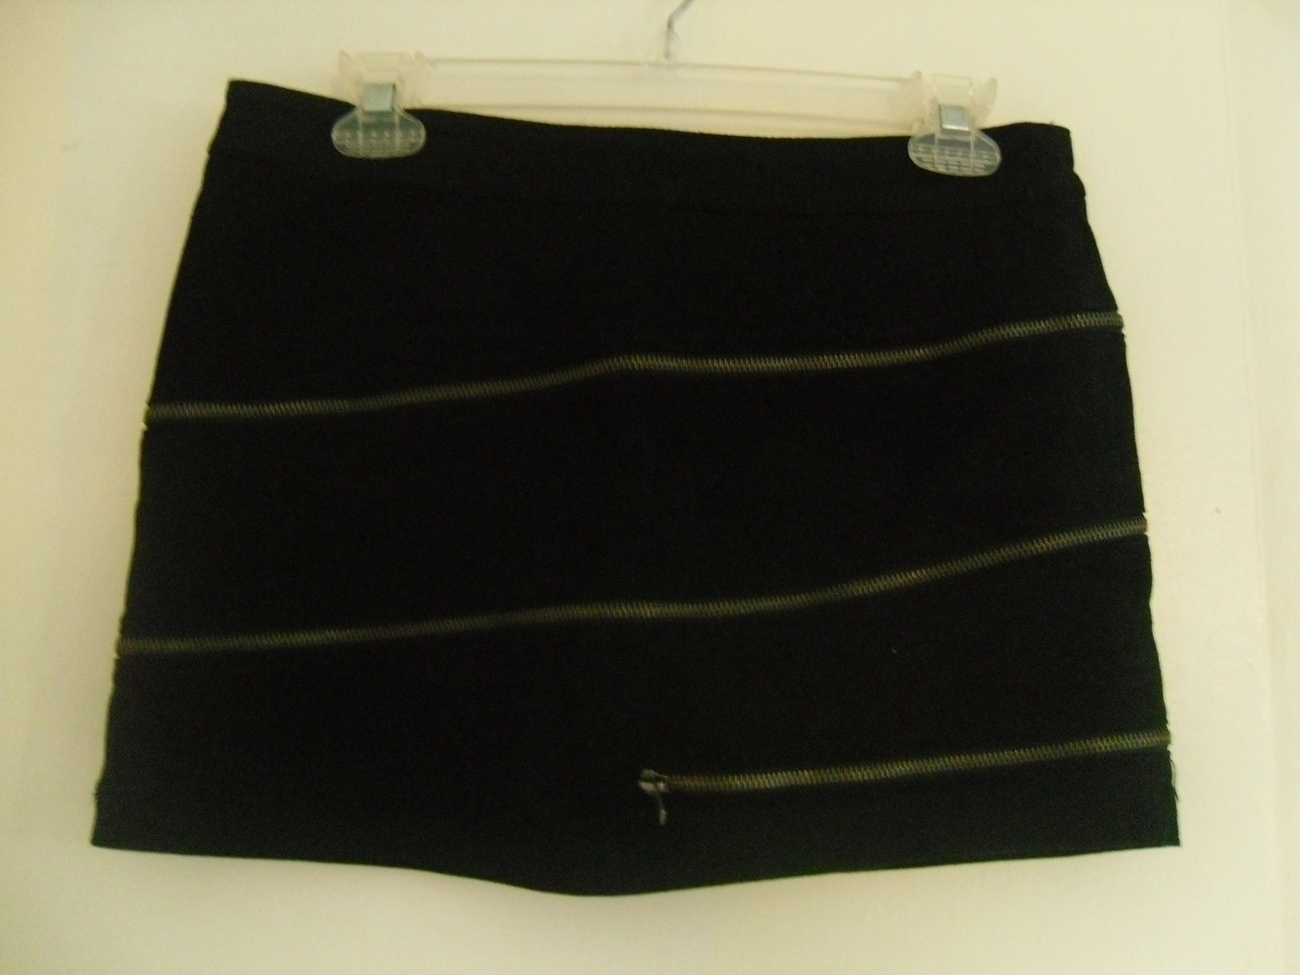 Black Zipper Skirt Size 7 Dollhouse